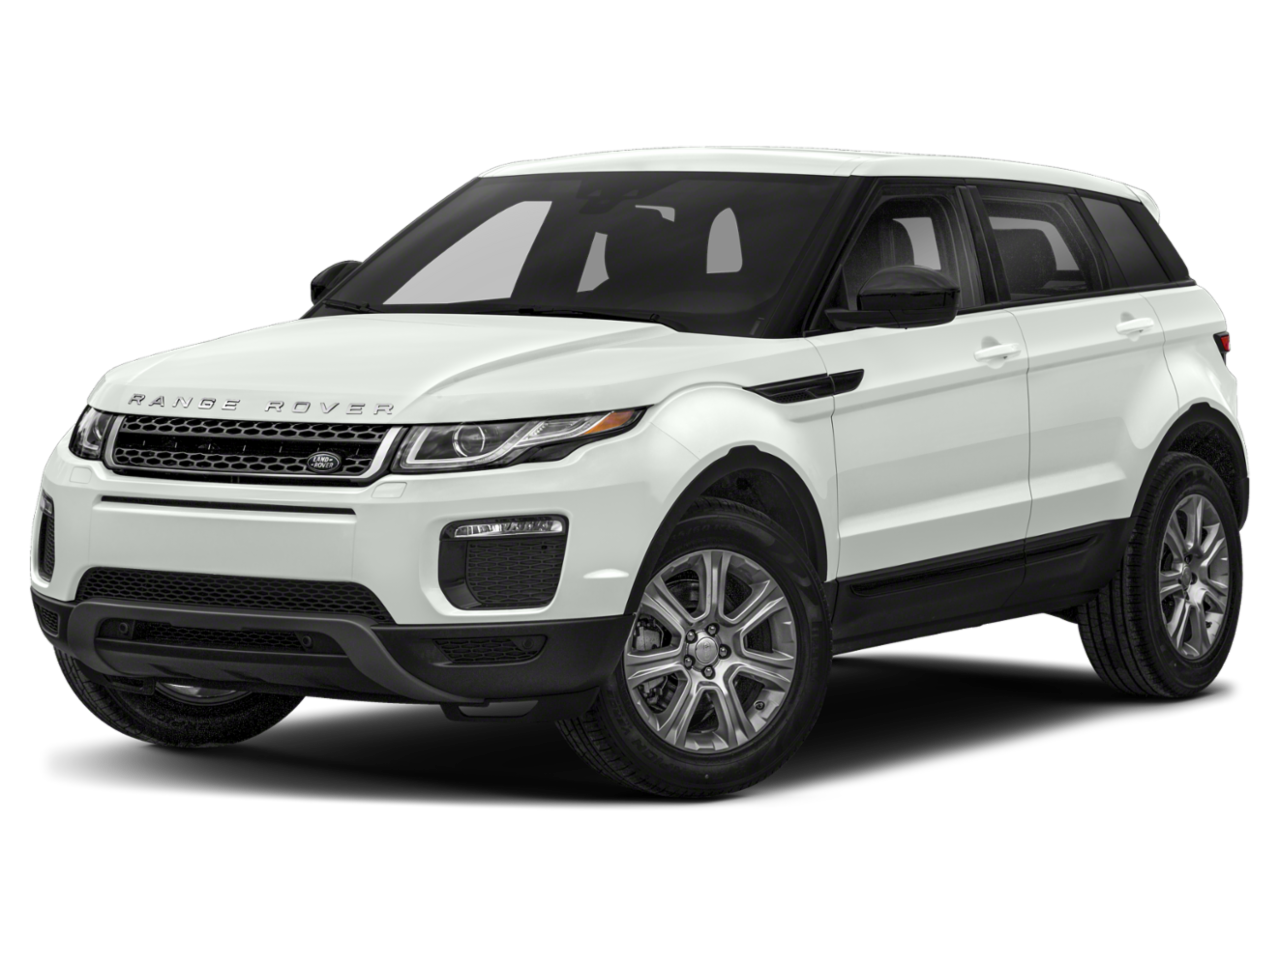 Buyer's Guide: 2019 Land Rover Range Rover Evoque